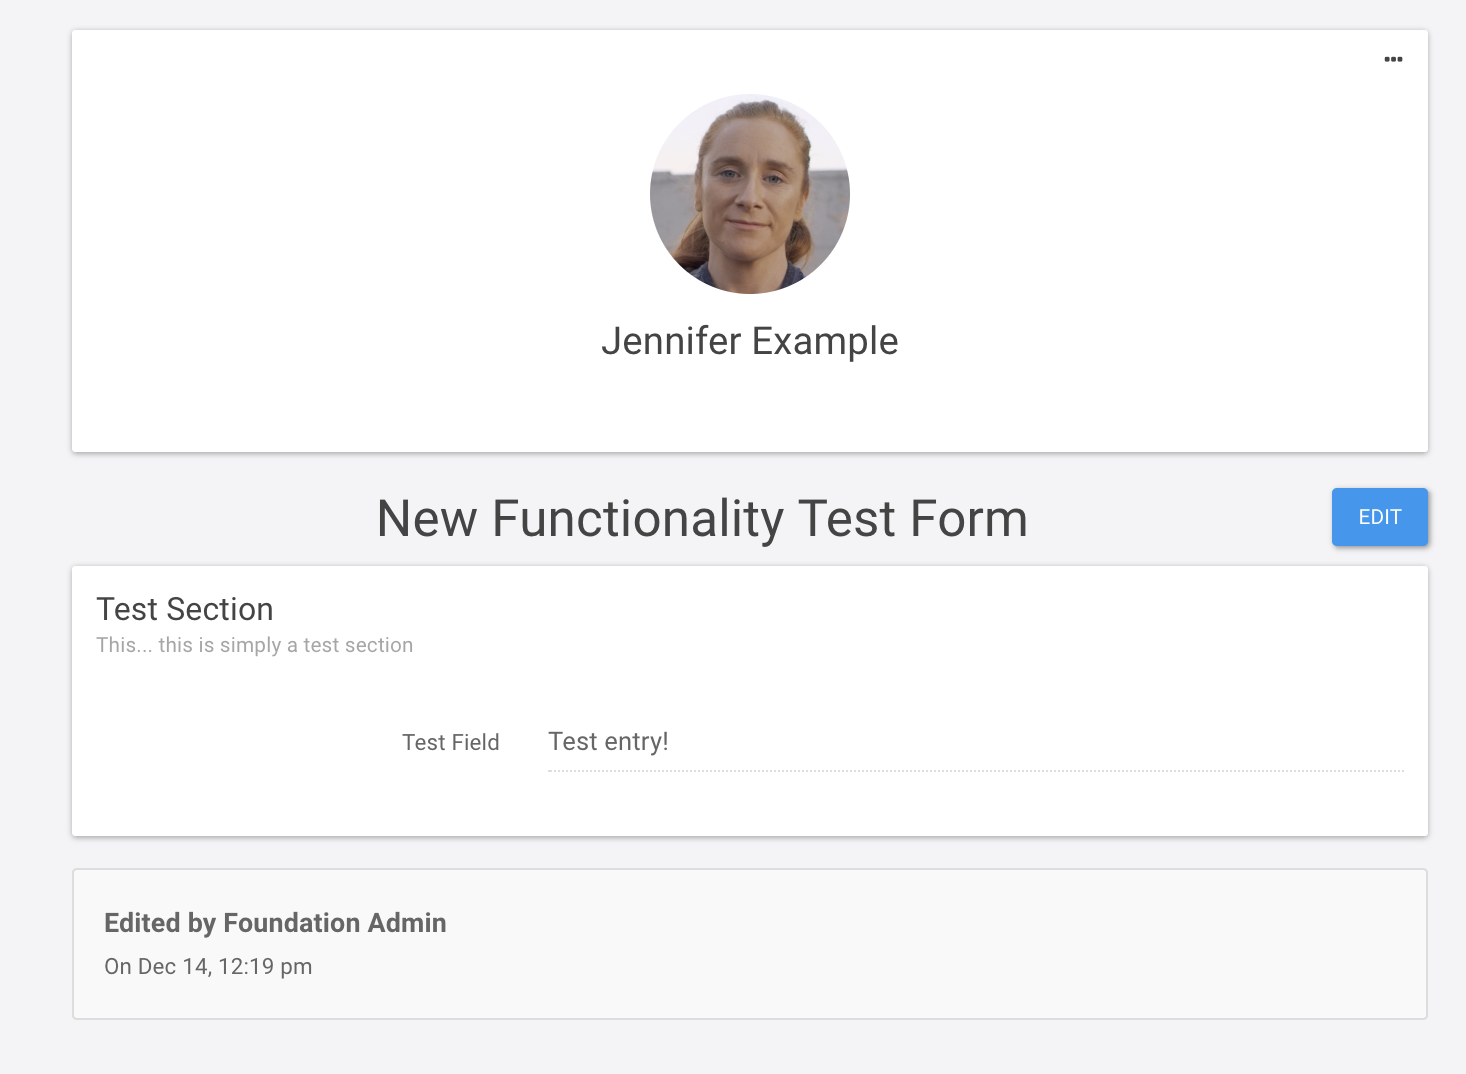 Jennifer completed form